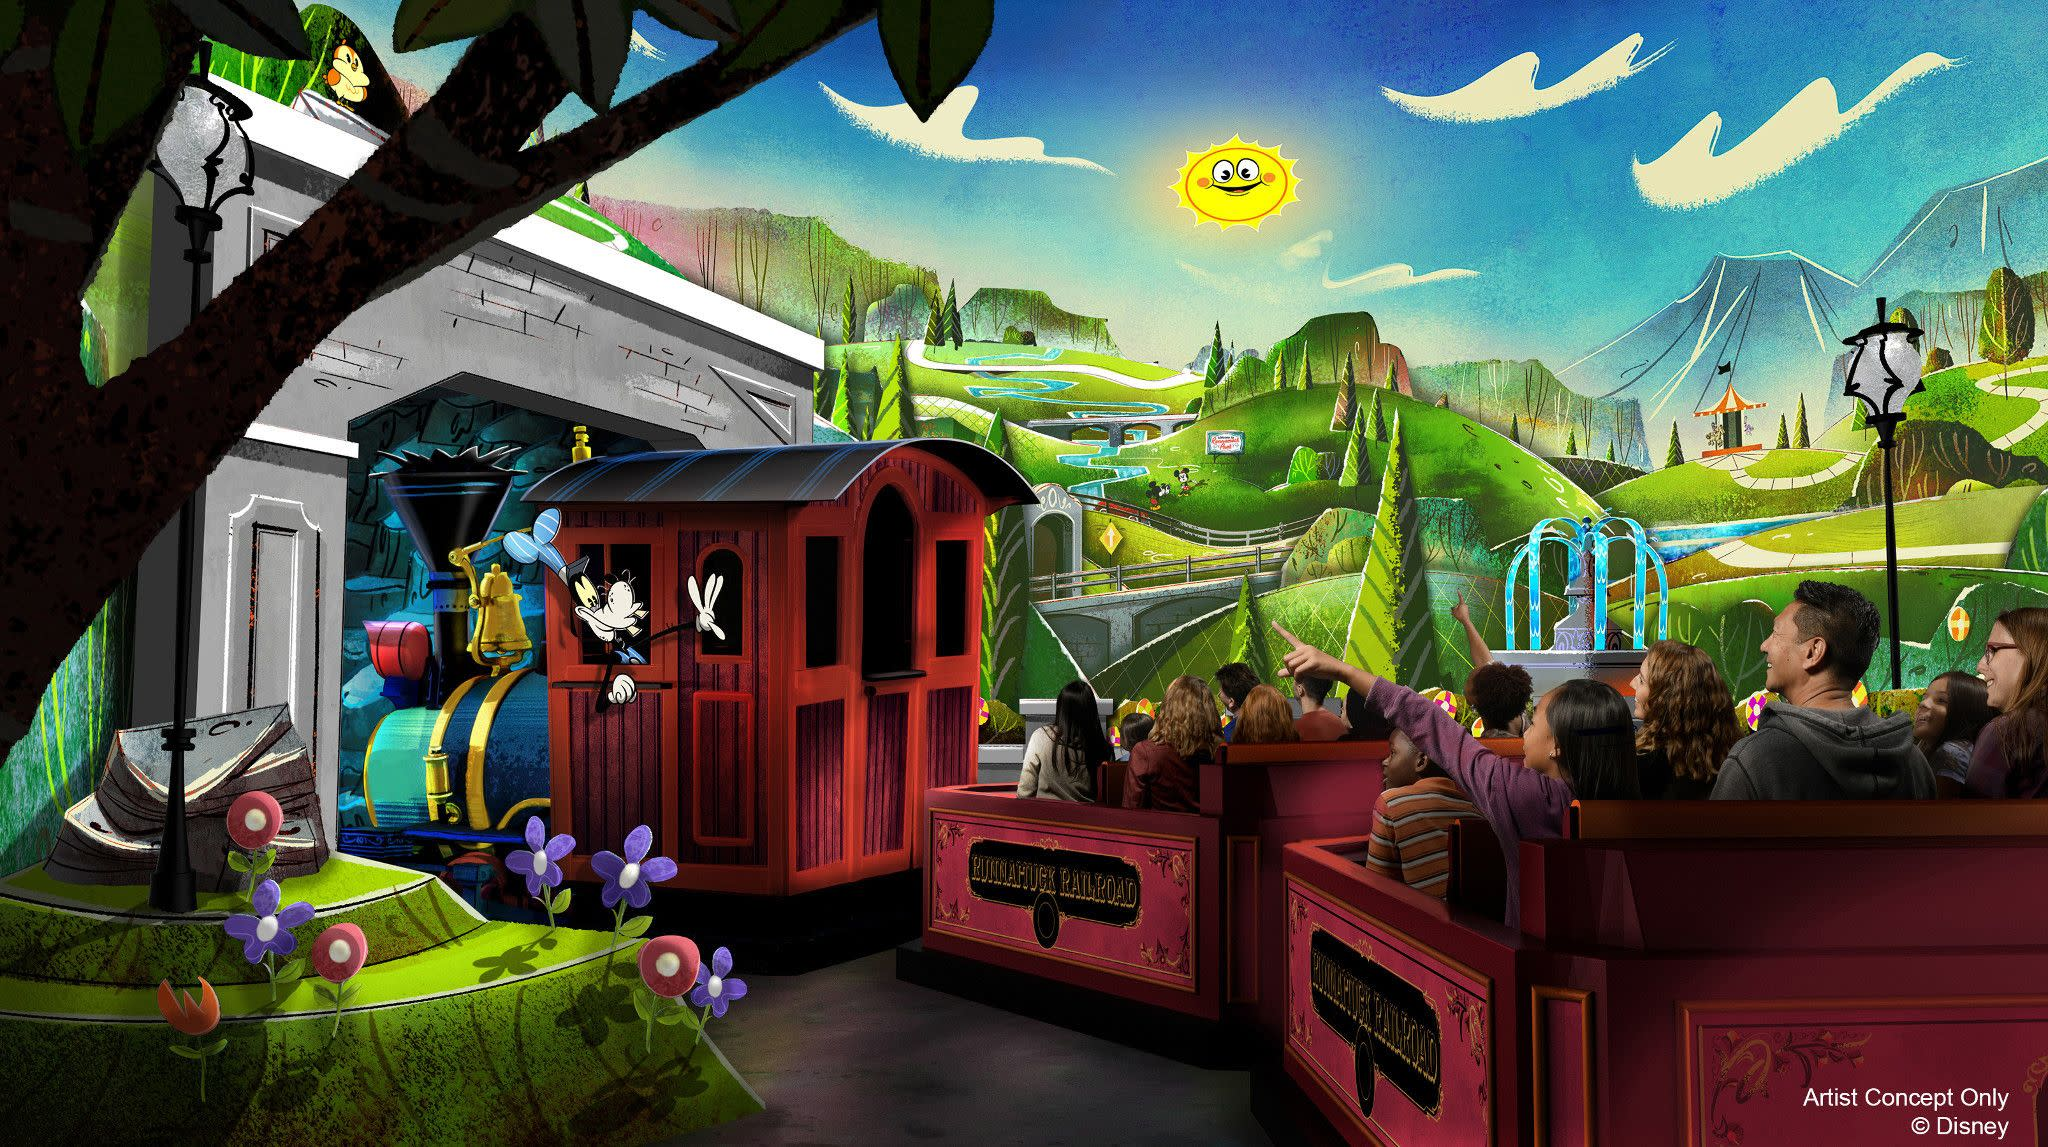 Concept Art for Mickey and Minnie's Runaway Railway, Coming Spring 2020 to Disney's Hollywood Studios at Walt Disney World Resort in Orlando